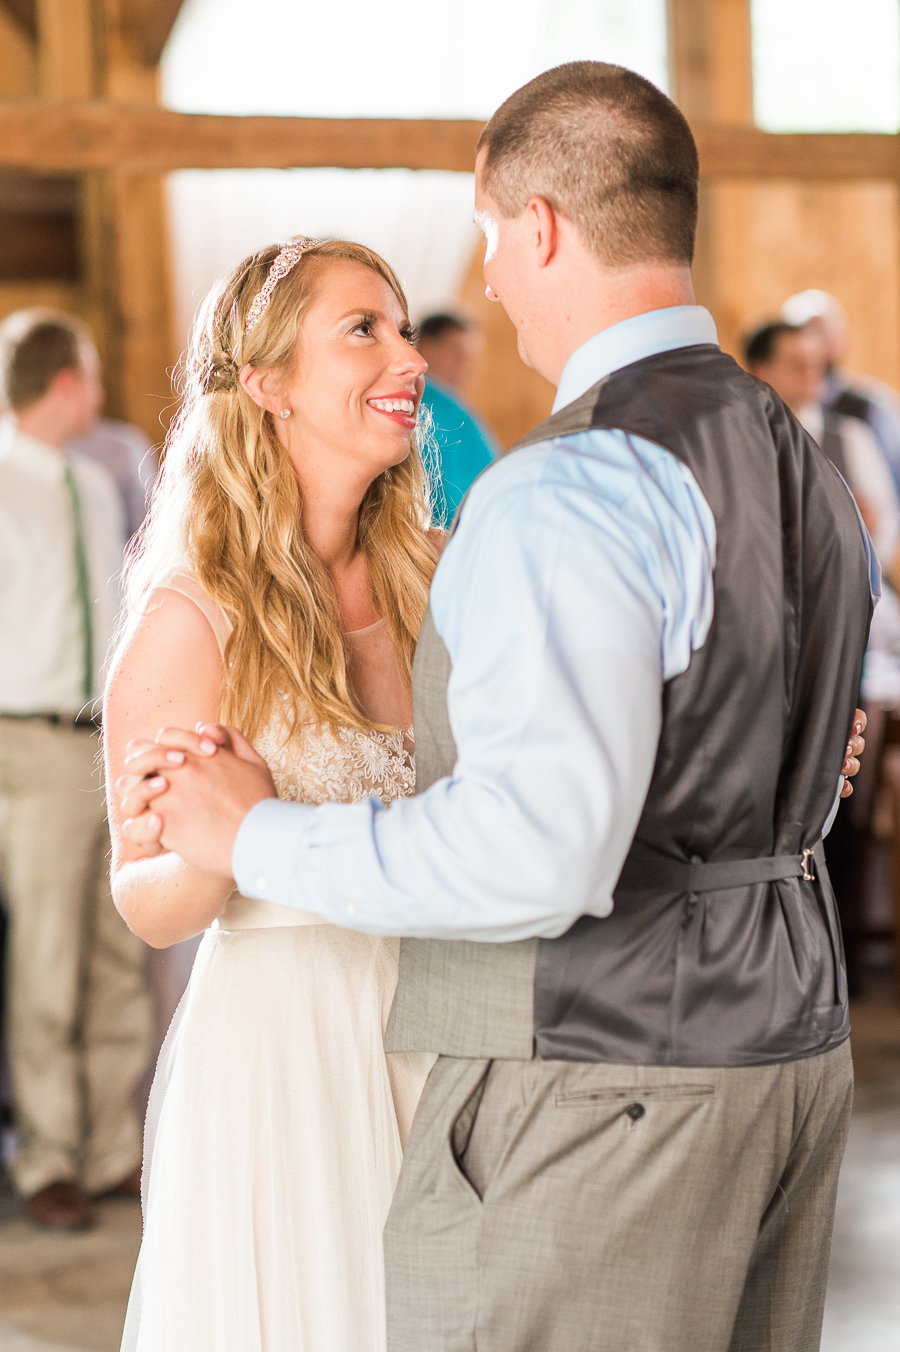 DJ Greyhound provides dj services for weddings in PA, MD, DC, and VA.  Photo courtesy of Stephanie Messick Photography.